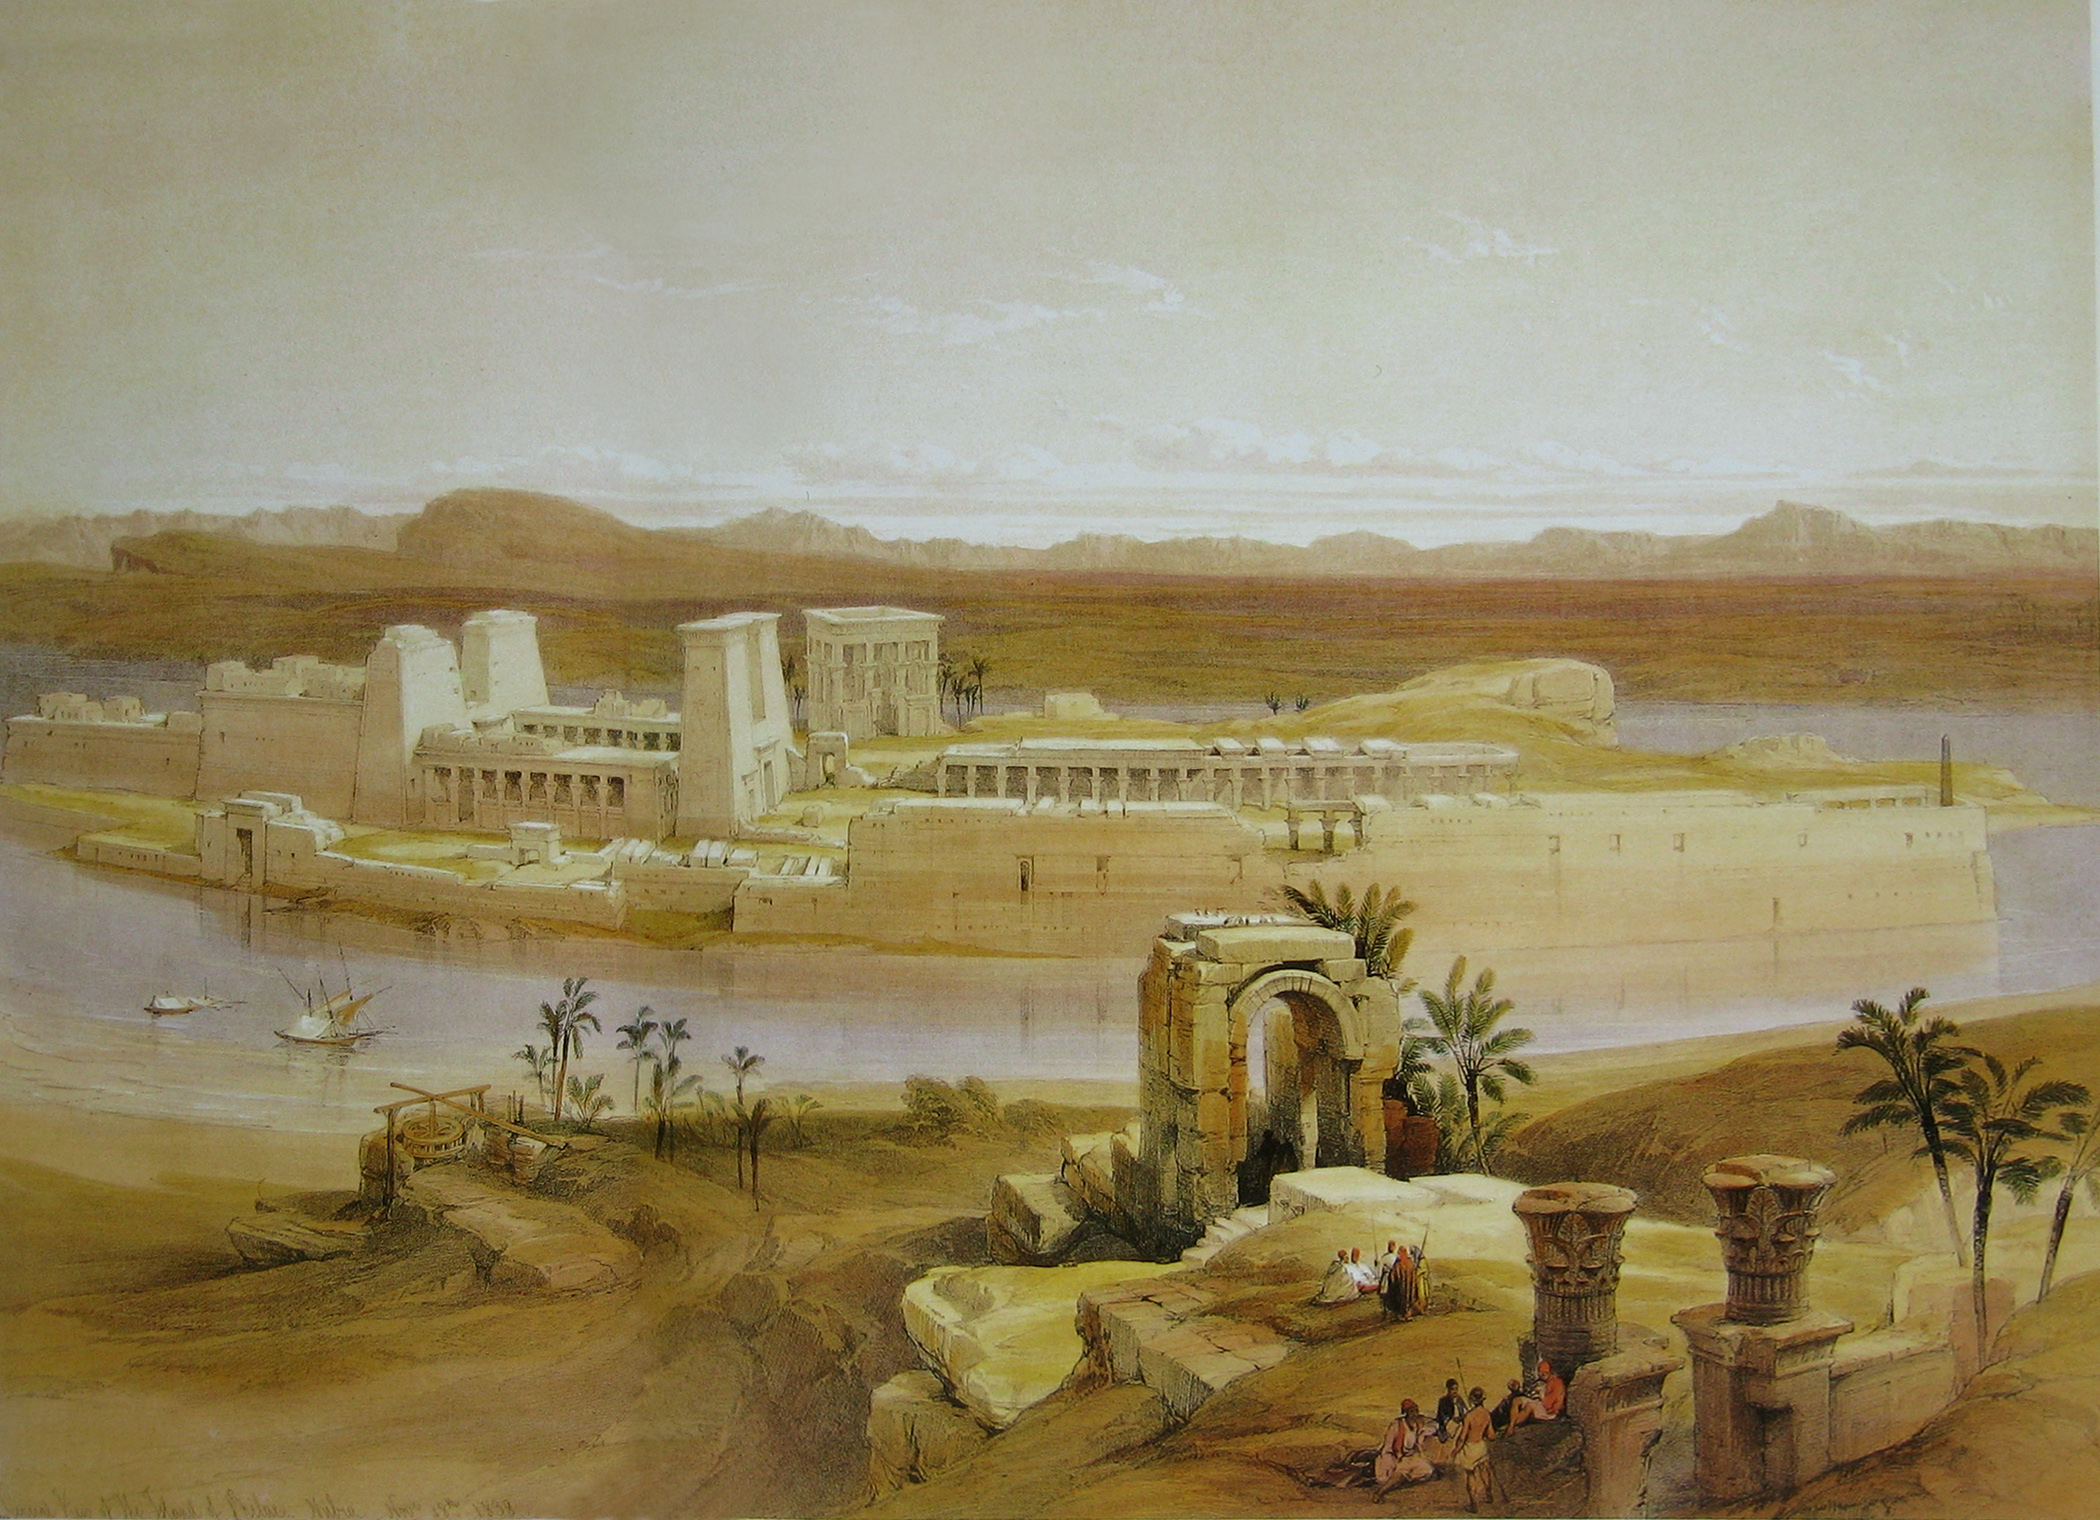 https://upload.wikimedia.org/wikipedia/commons/d/d8/David_Roberts_Temple_Island_Philae.jpg